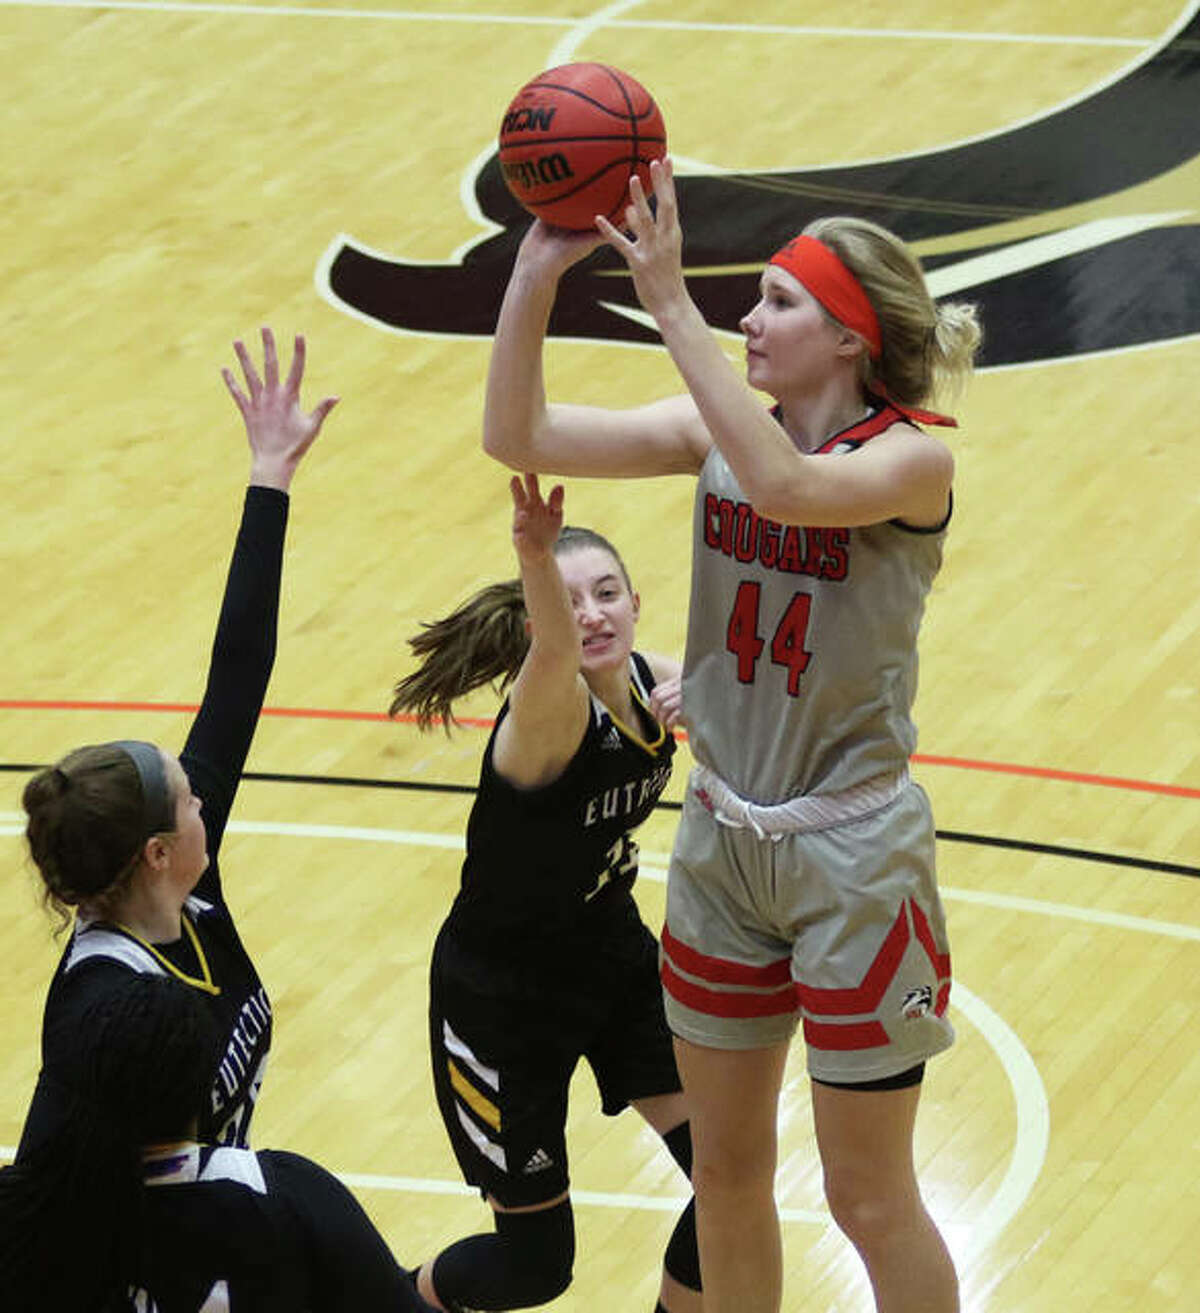 SIUE's Tori Hamilton (44), a 6-foot-5 freshman from Paris, Missouri, puts up a shot over two UHSP defenders Wednesday at First Community Arena in Edwardsville.